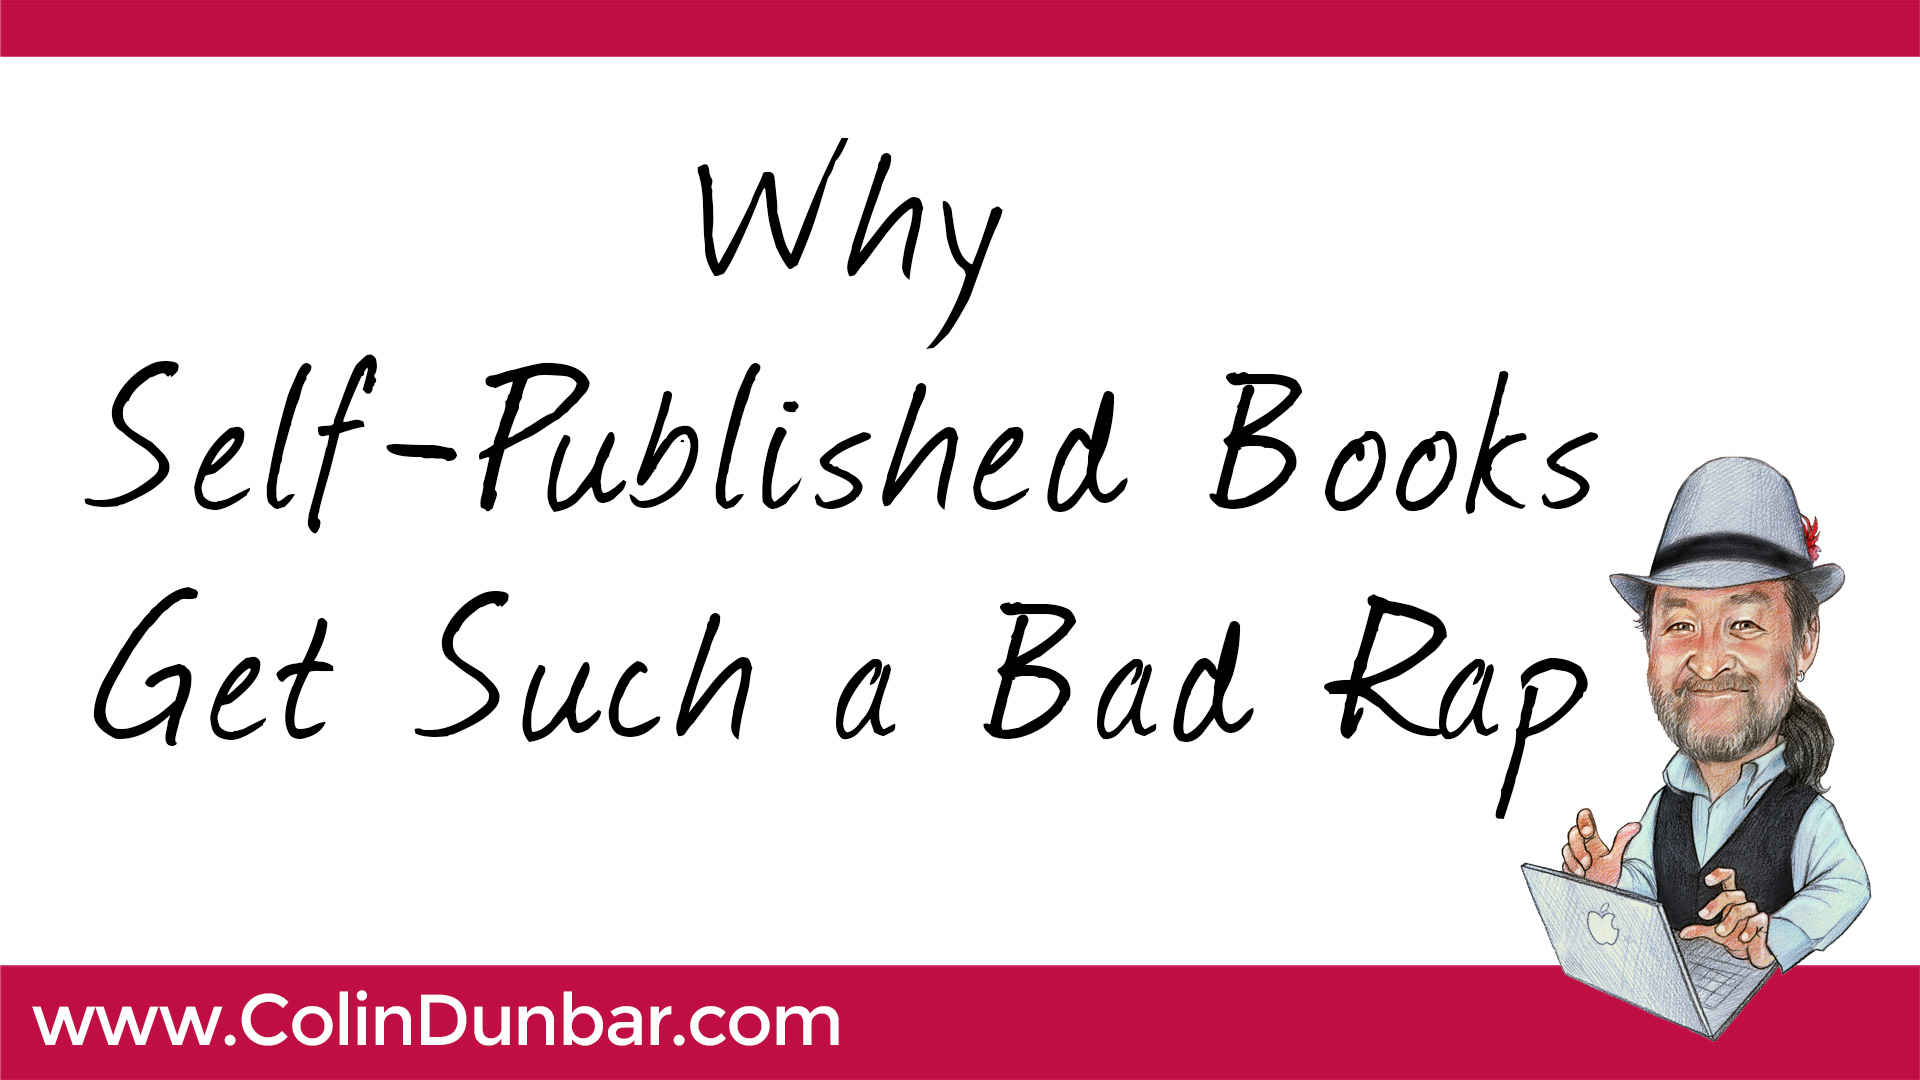 This is Why Self Published Books Get Such a Bad Rap